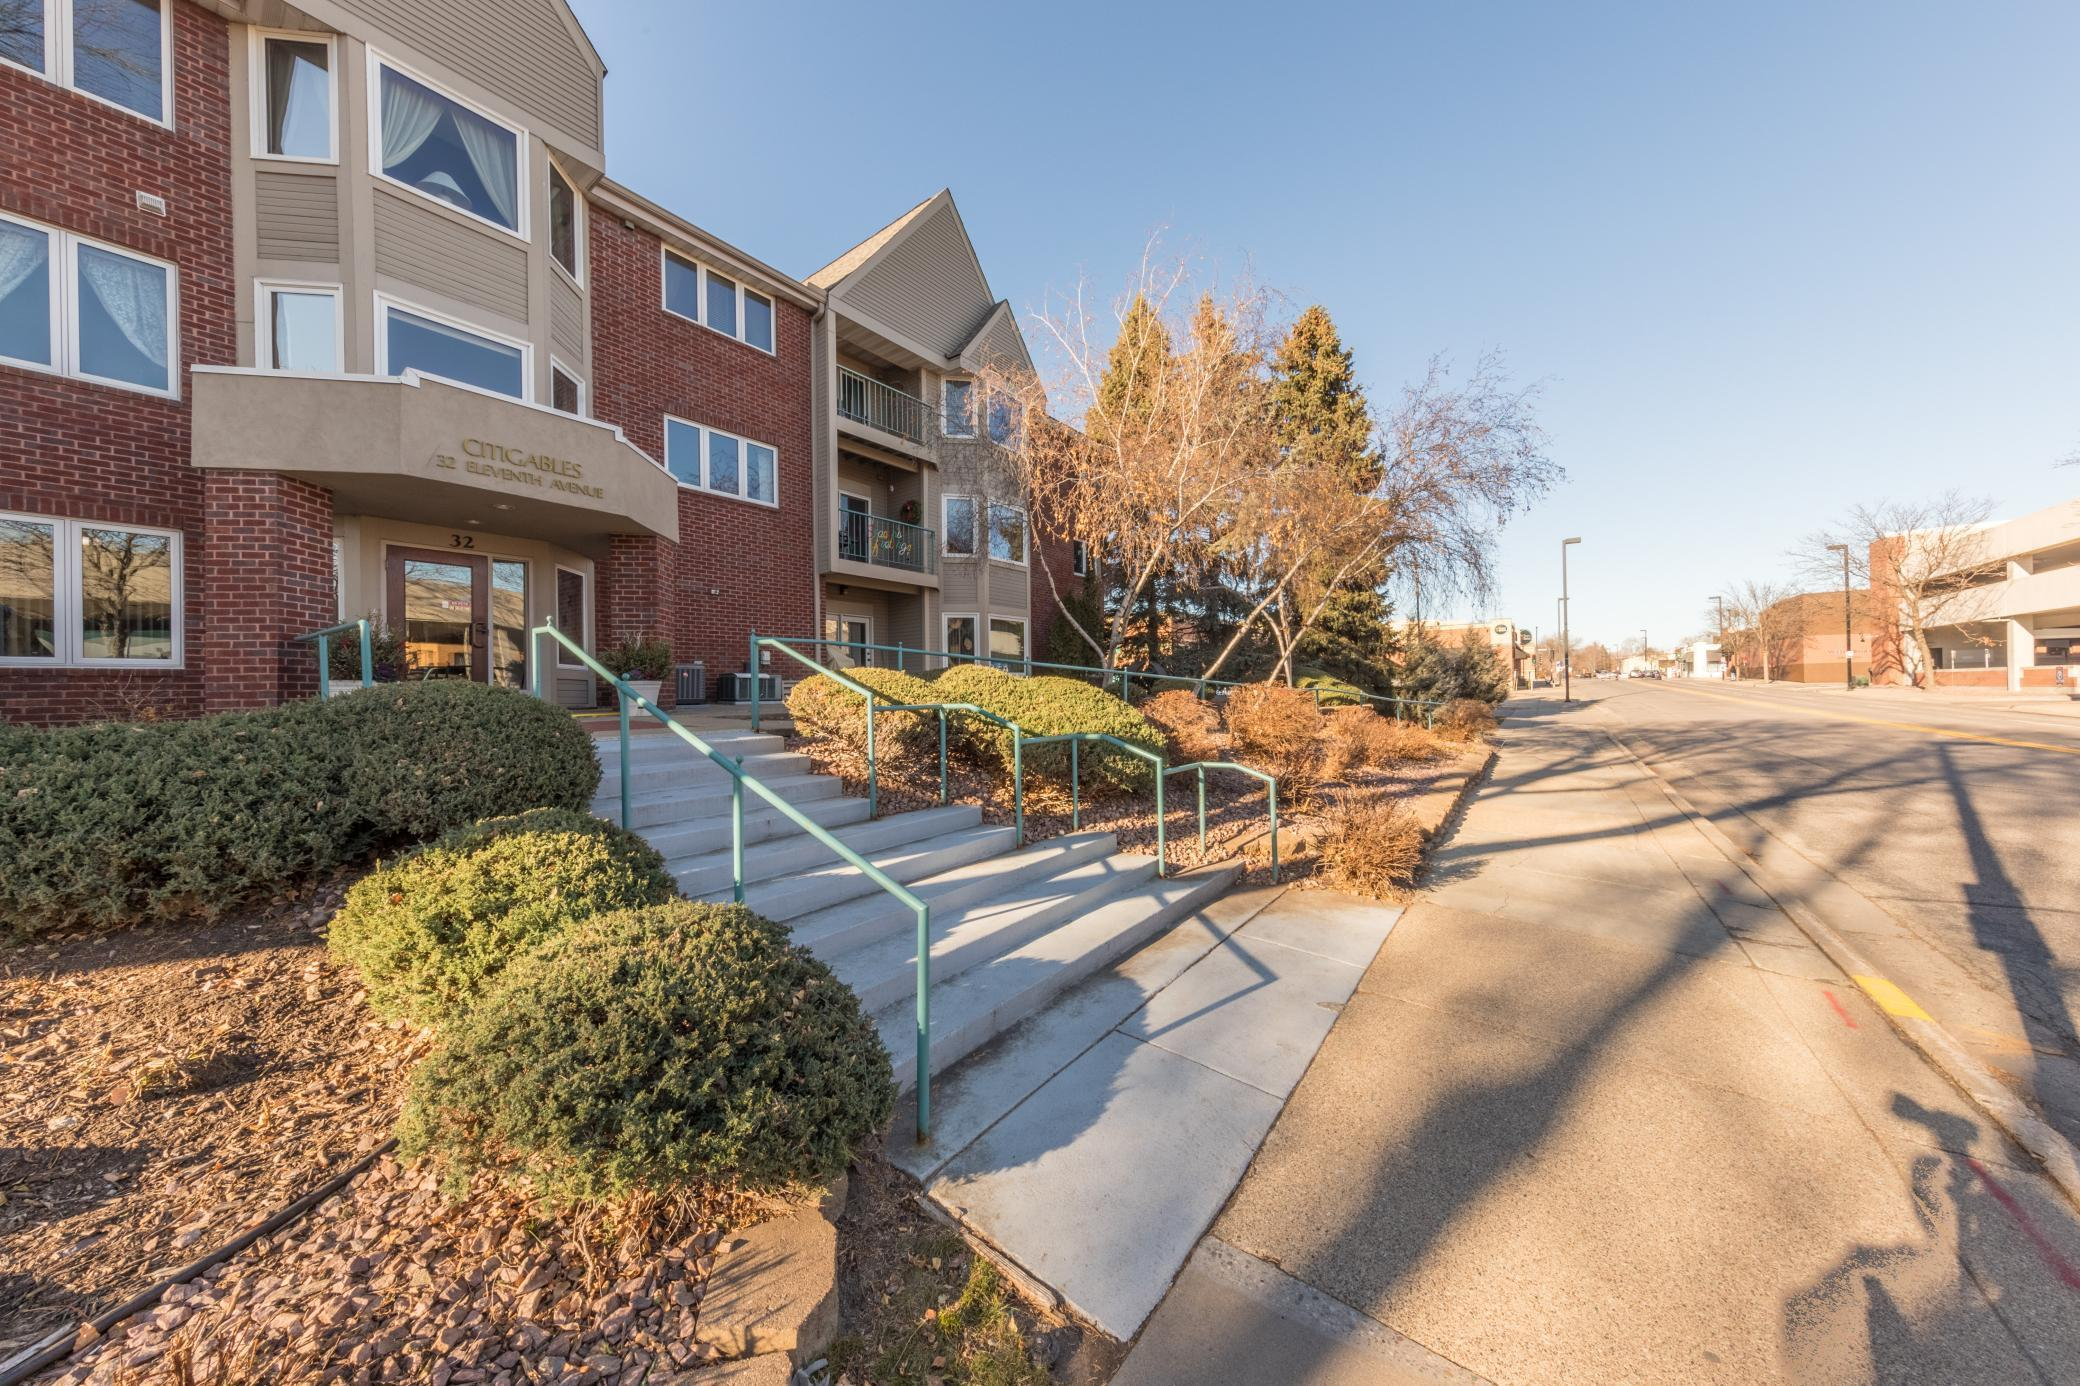 32 11th Avenue S #101 Property Photo - Hopkins, MN real estate listing